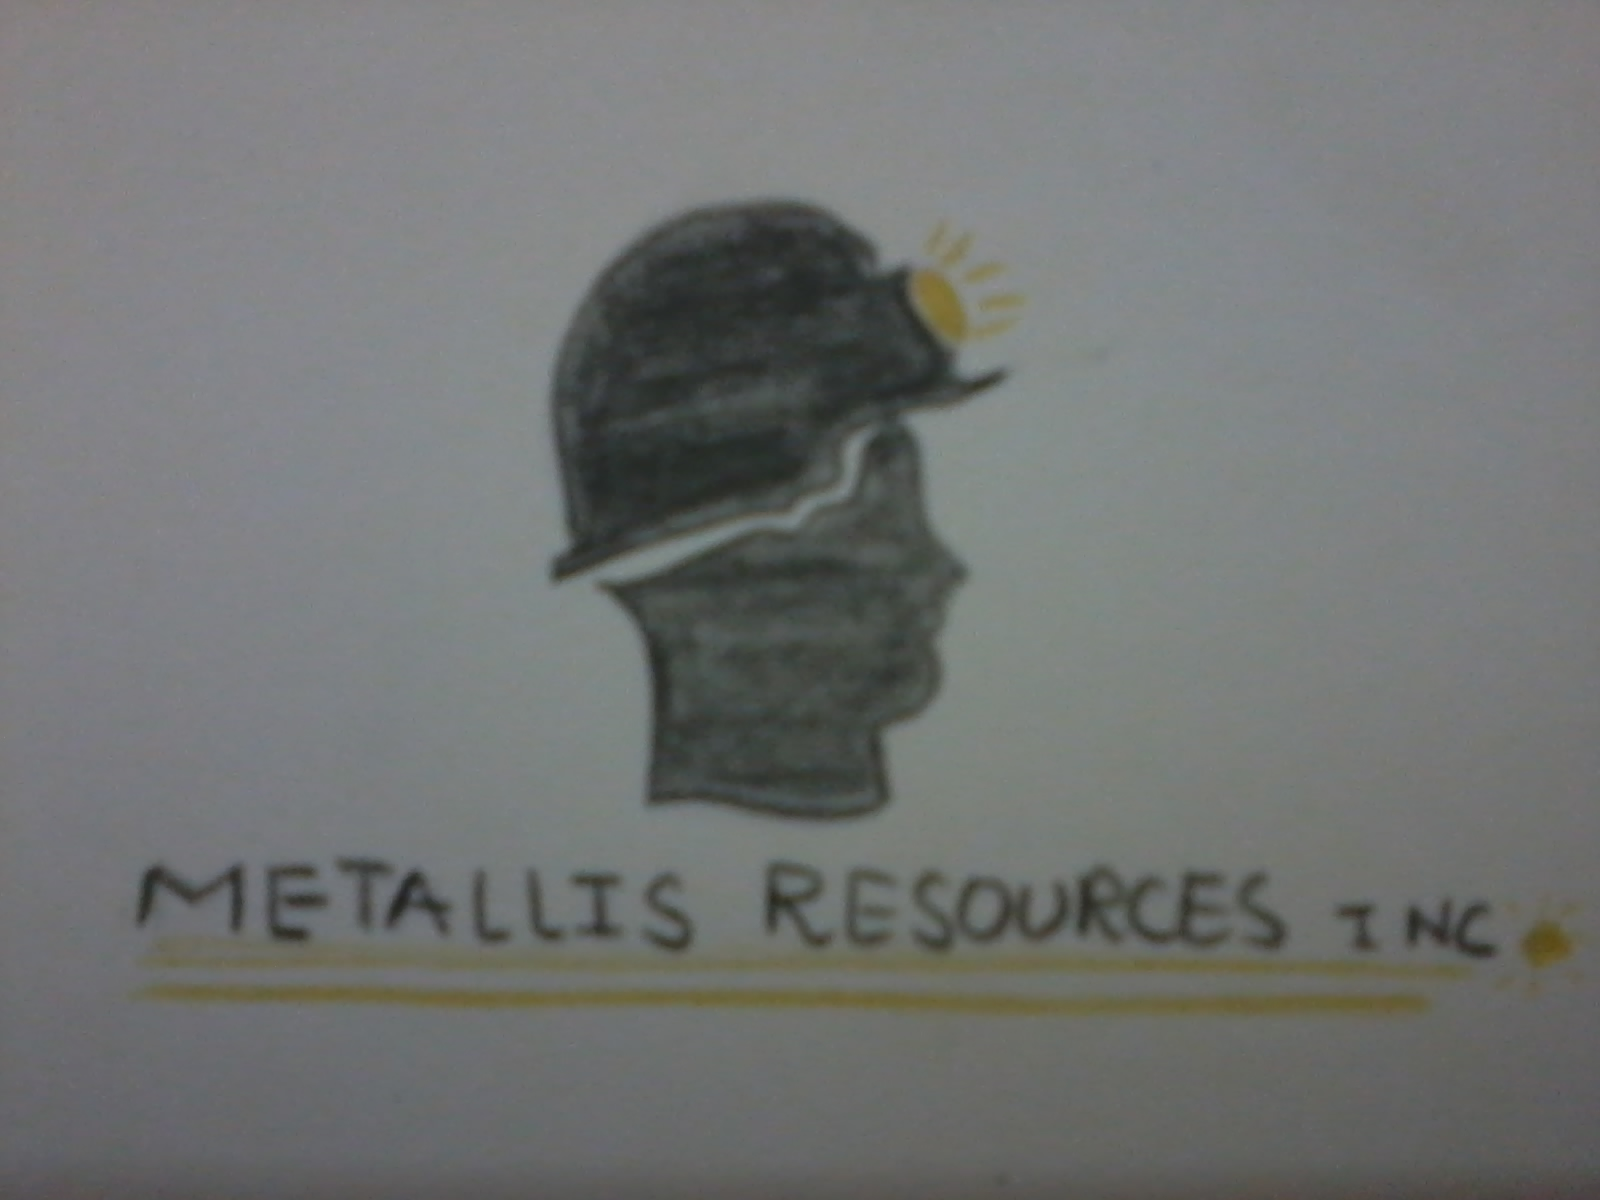 Logo Design by mediaproductionart - Entry No. 35 in the Logo Design Contest Metallis Resources Inc Logo Design.